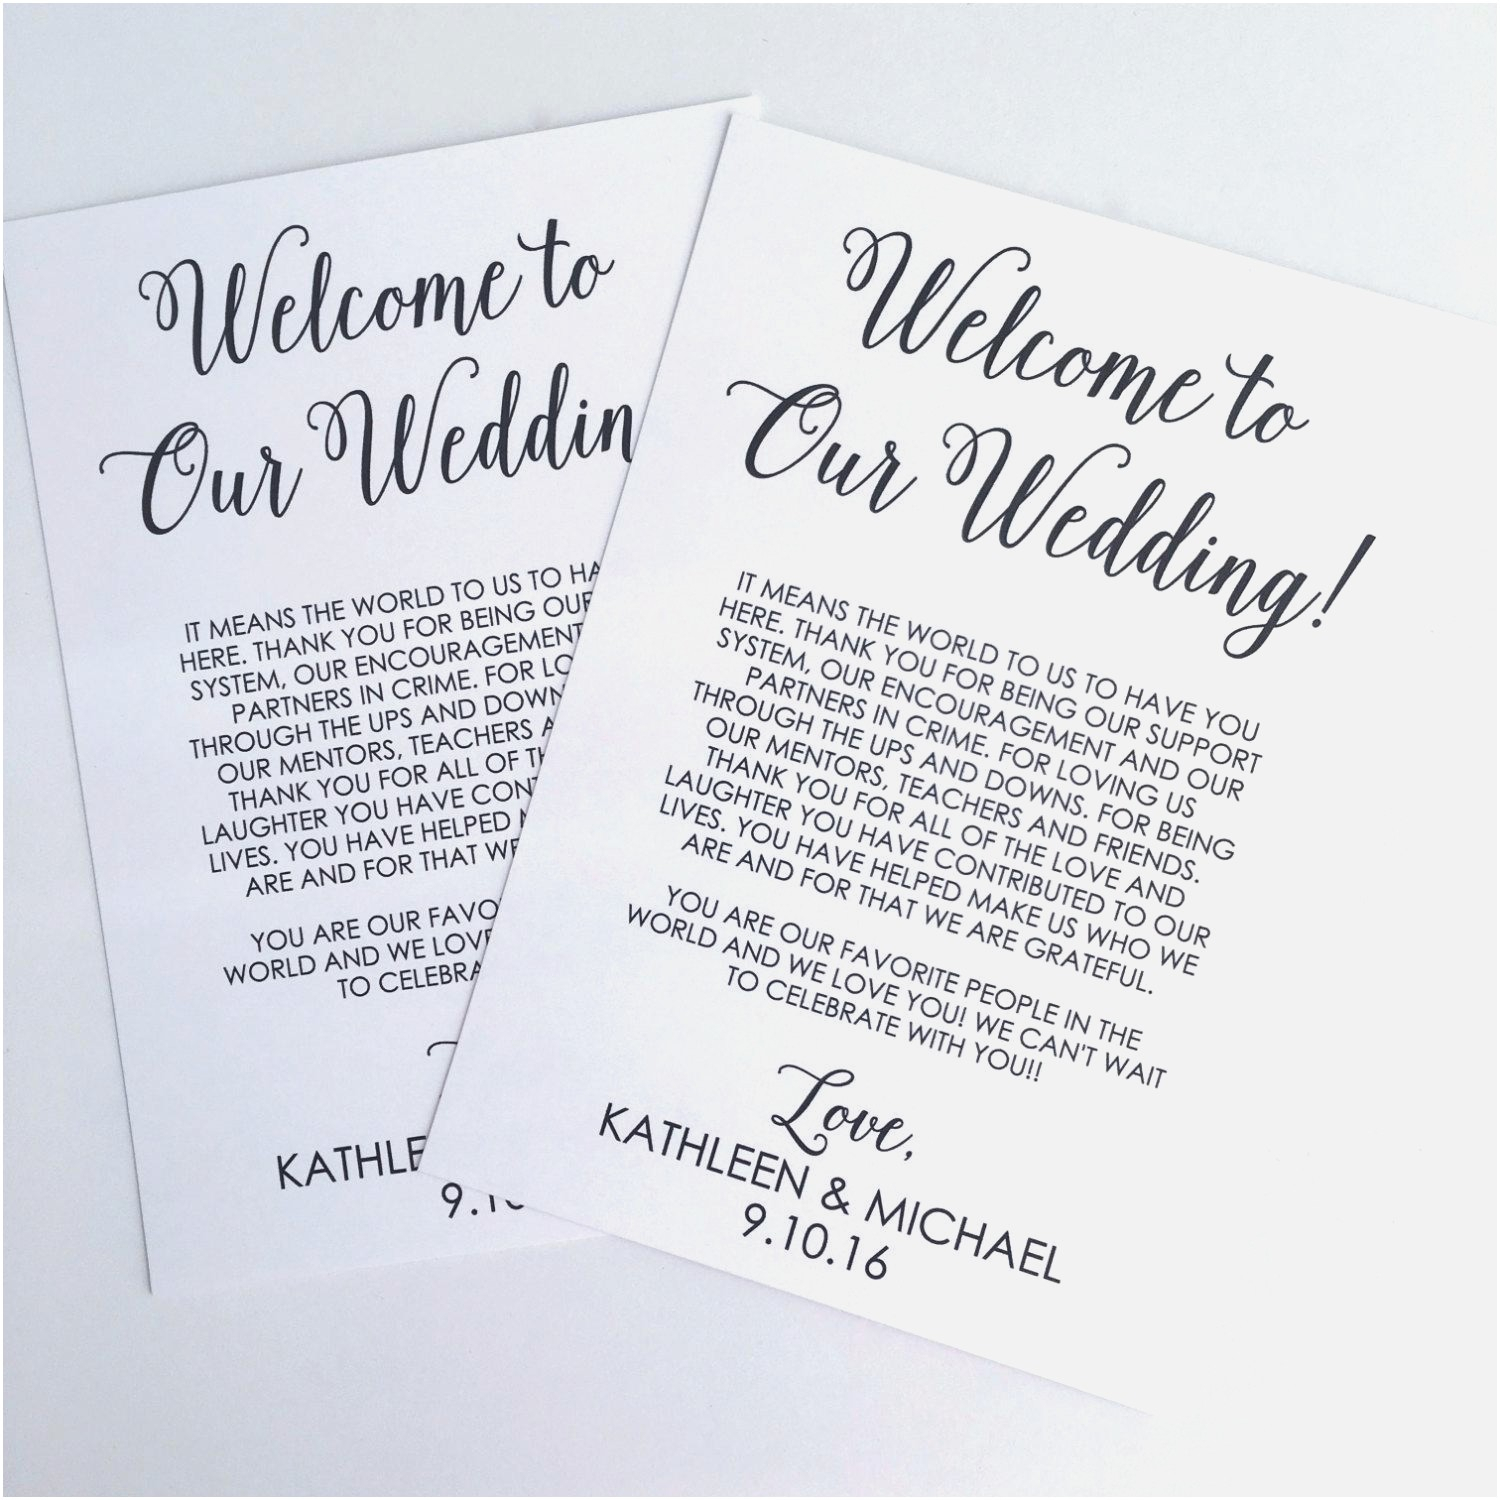 19 Wedding Hotel Welcome Letter Template Examples Letter Templates